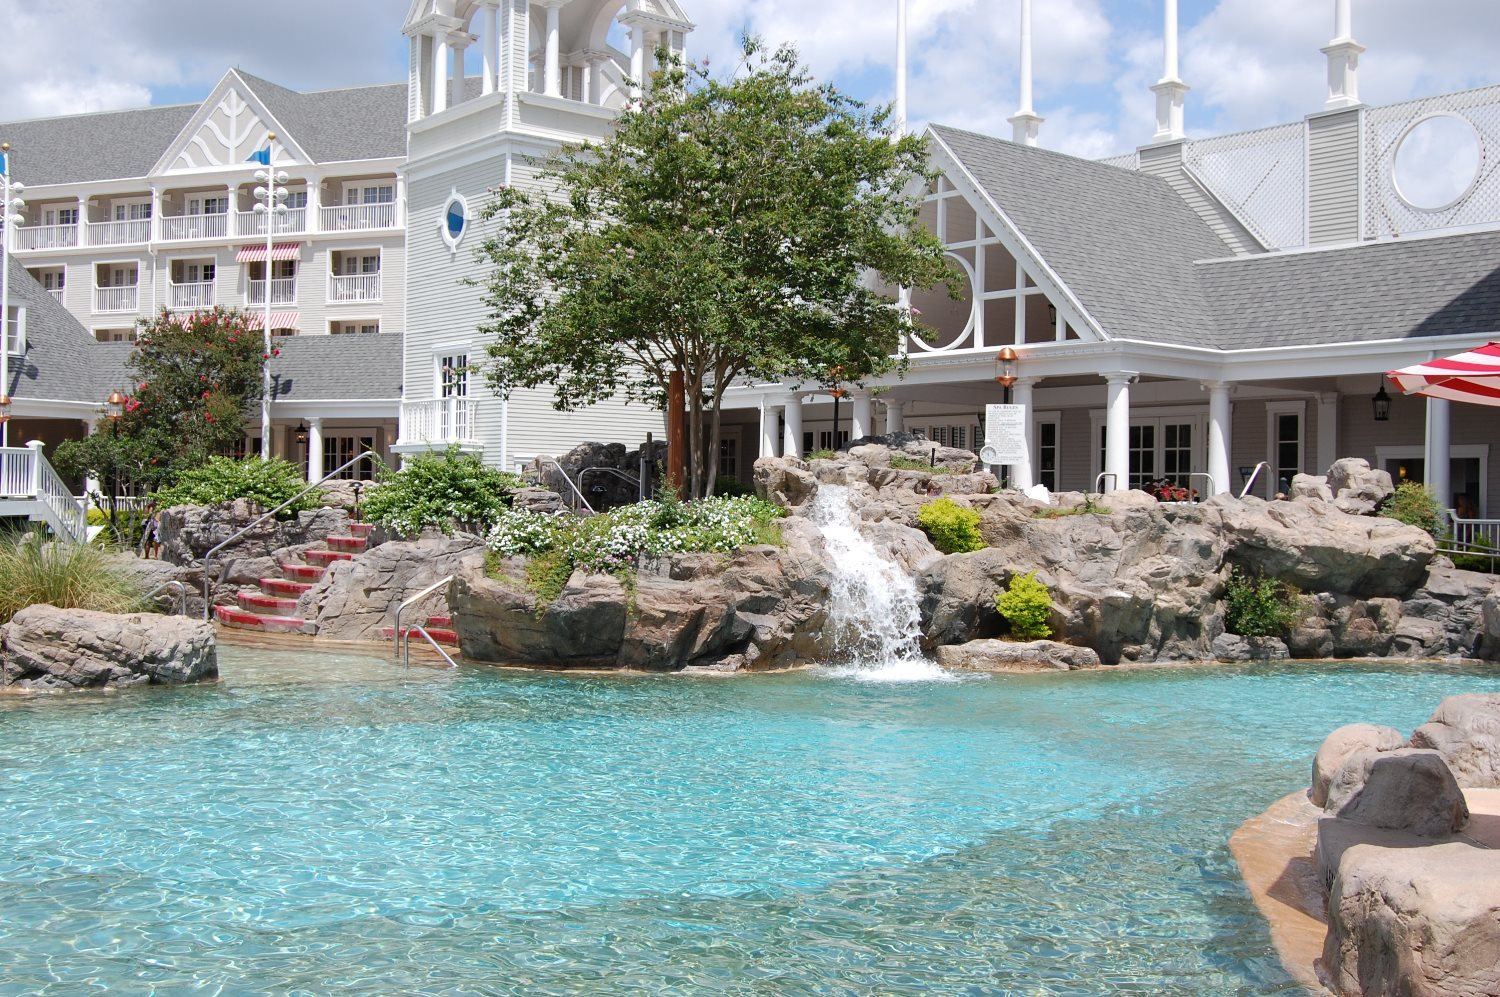 Storm Along Bay Feature Pool at Disney's Yacht Club Resort